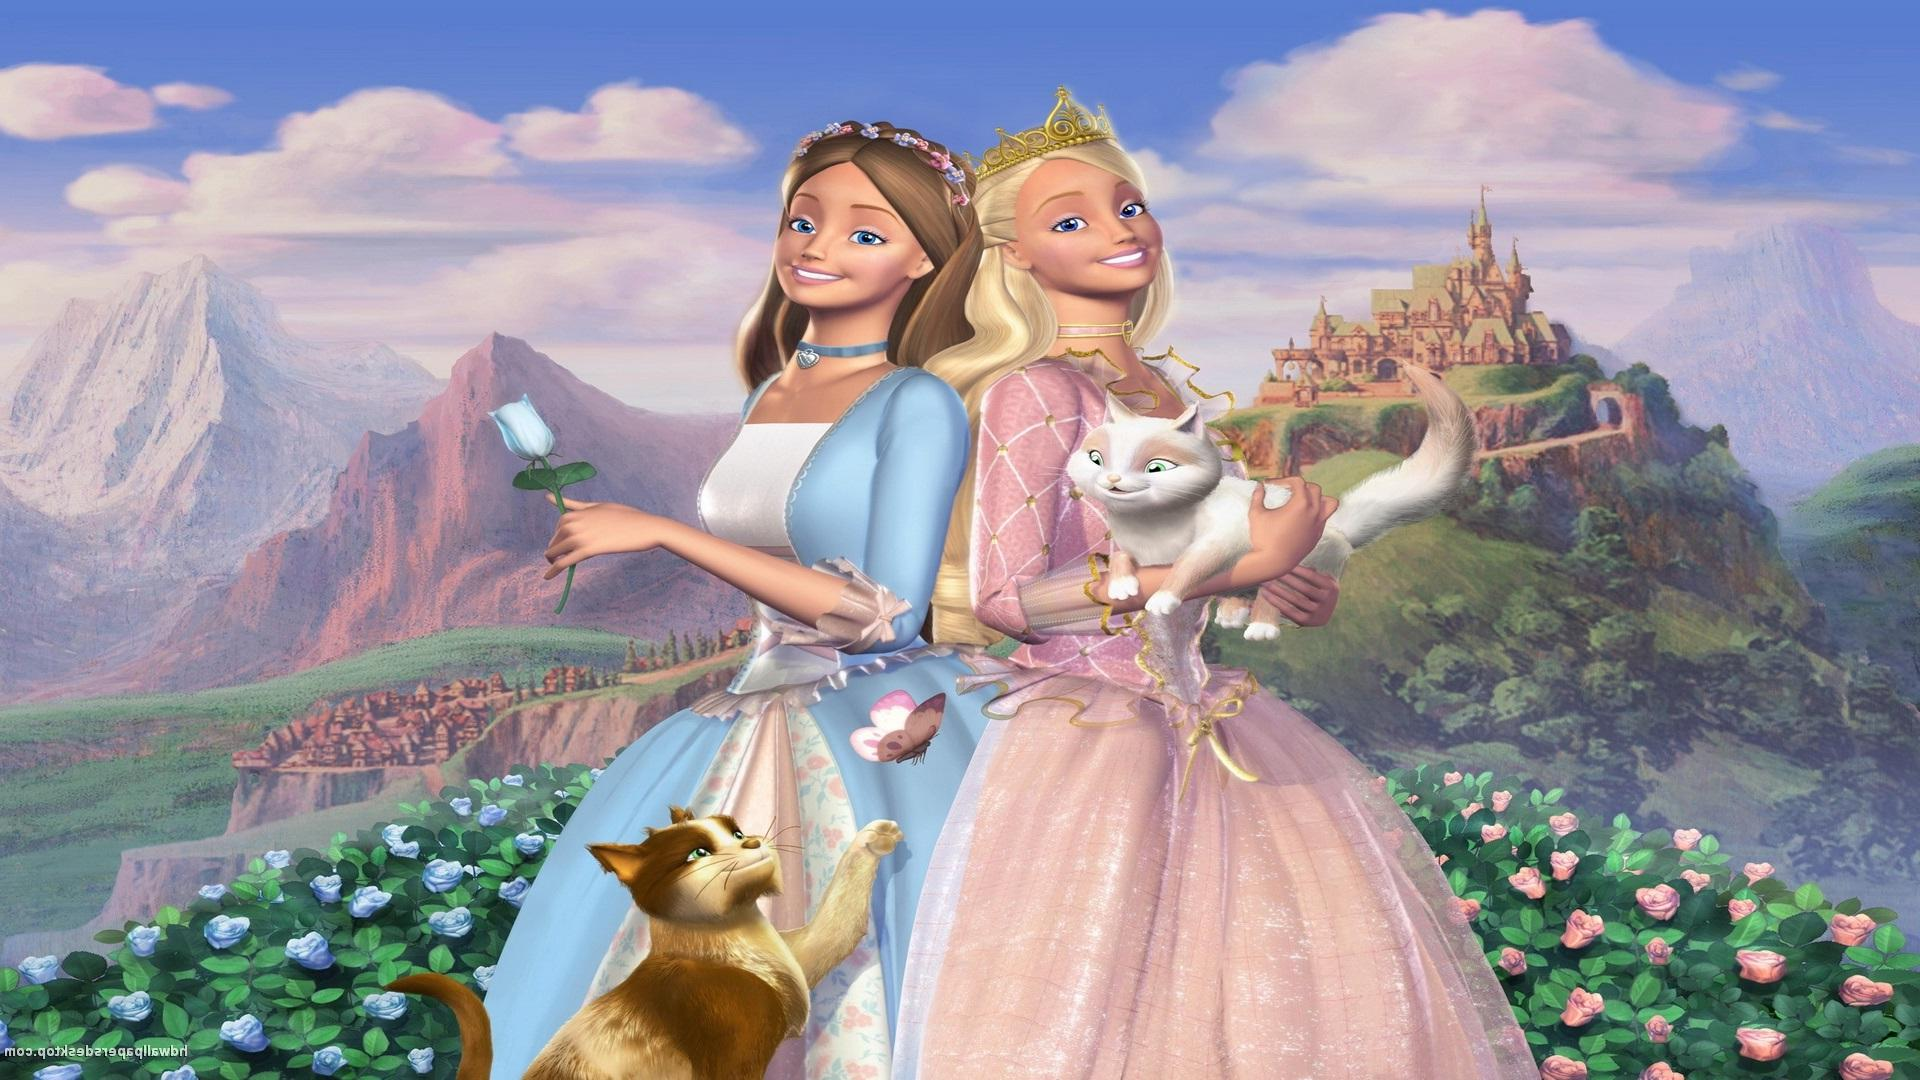 Princess Wallpaper For Girls Download Animated Barbie Wallpaper Gallery